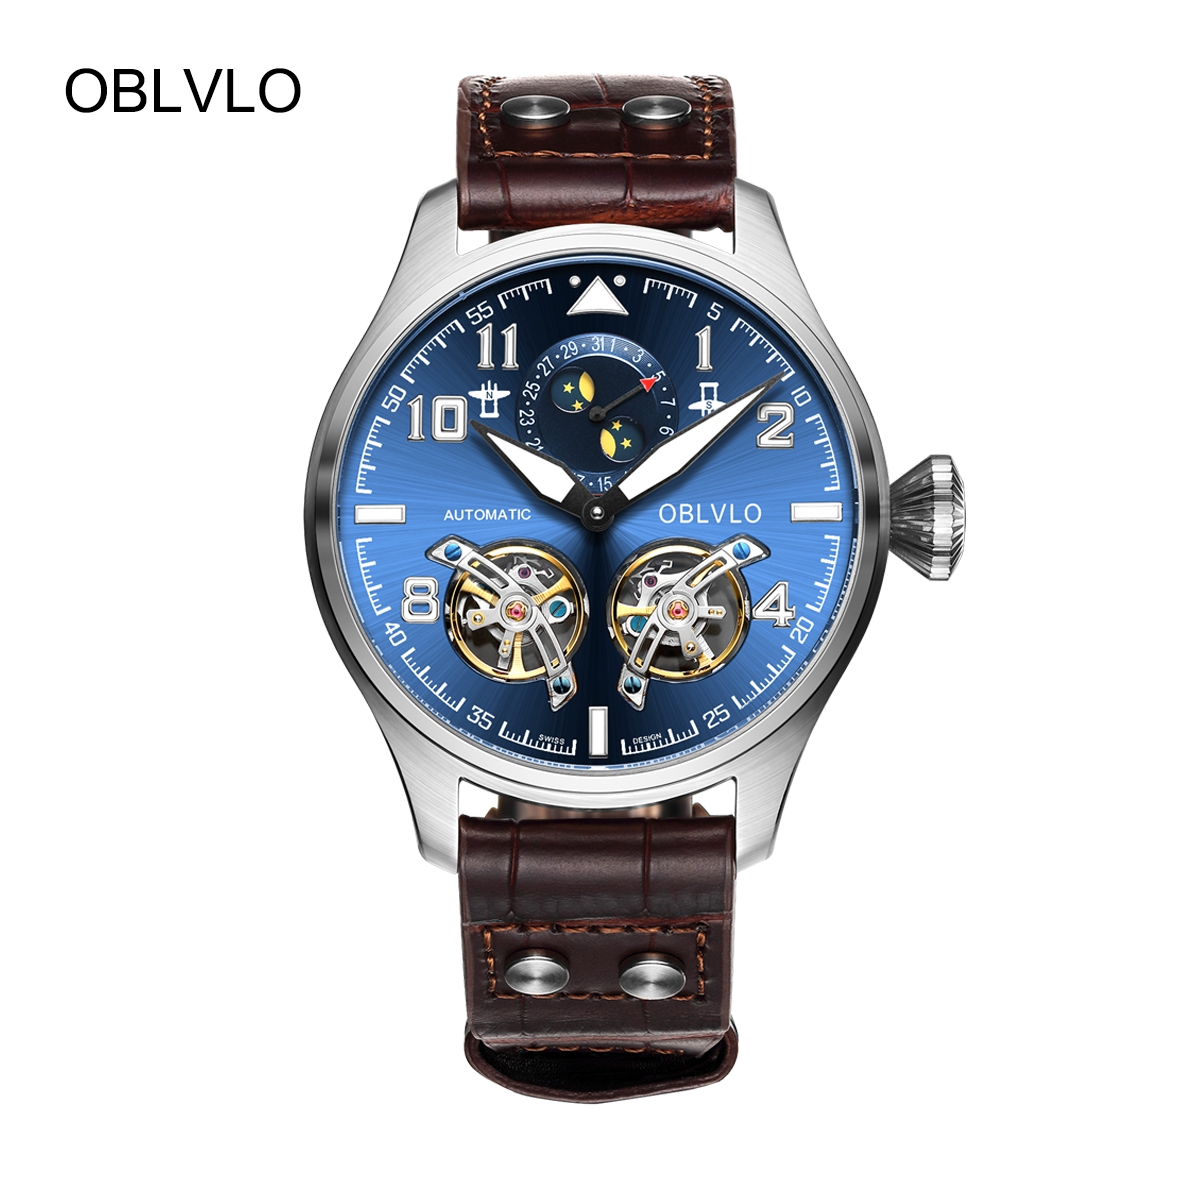 OBLVLO Mens Fashion Tourbillon Watches Steel Automatic Watch Blue Dial Leather Strap Watch OBL8232-YLS